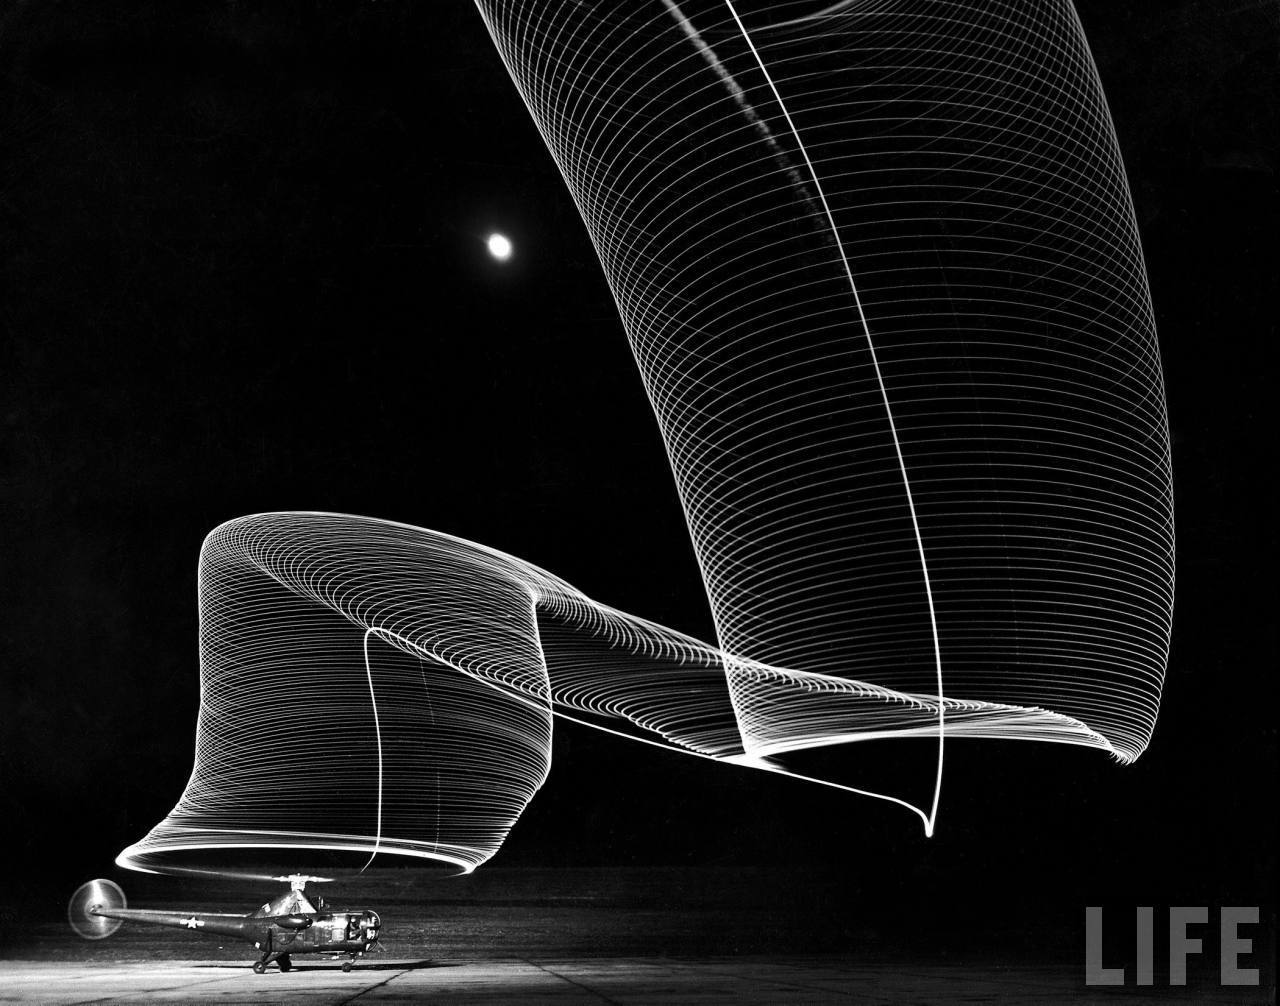 Helicopter Time Exposure – LIFE Magazine